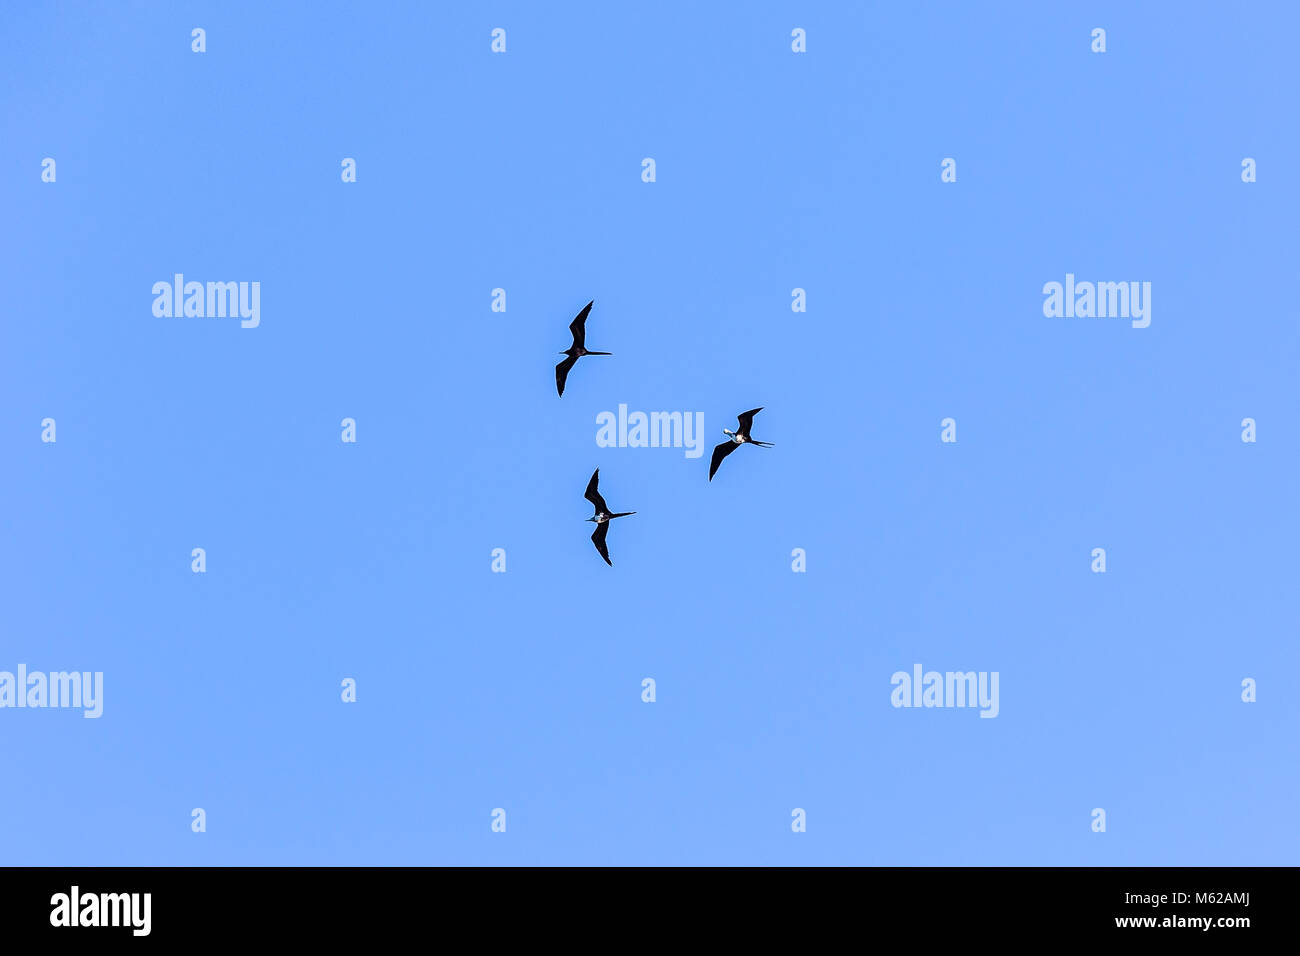 large birds flying in formation against blue sky rio de janeiro